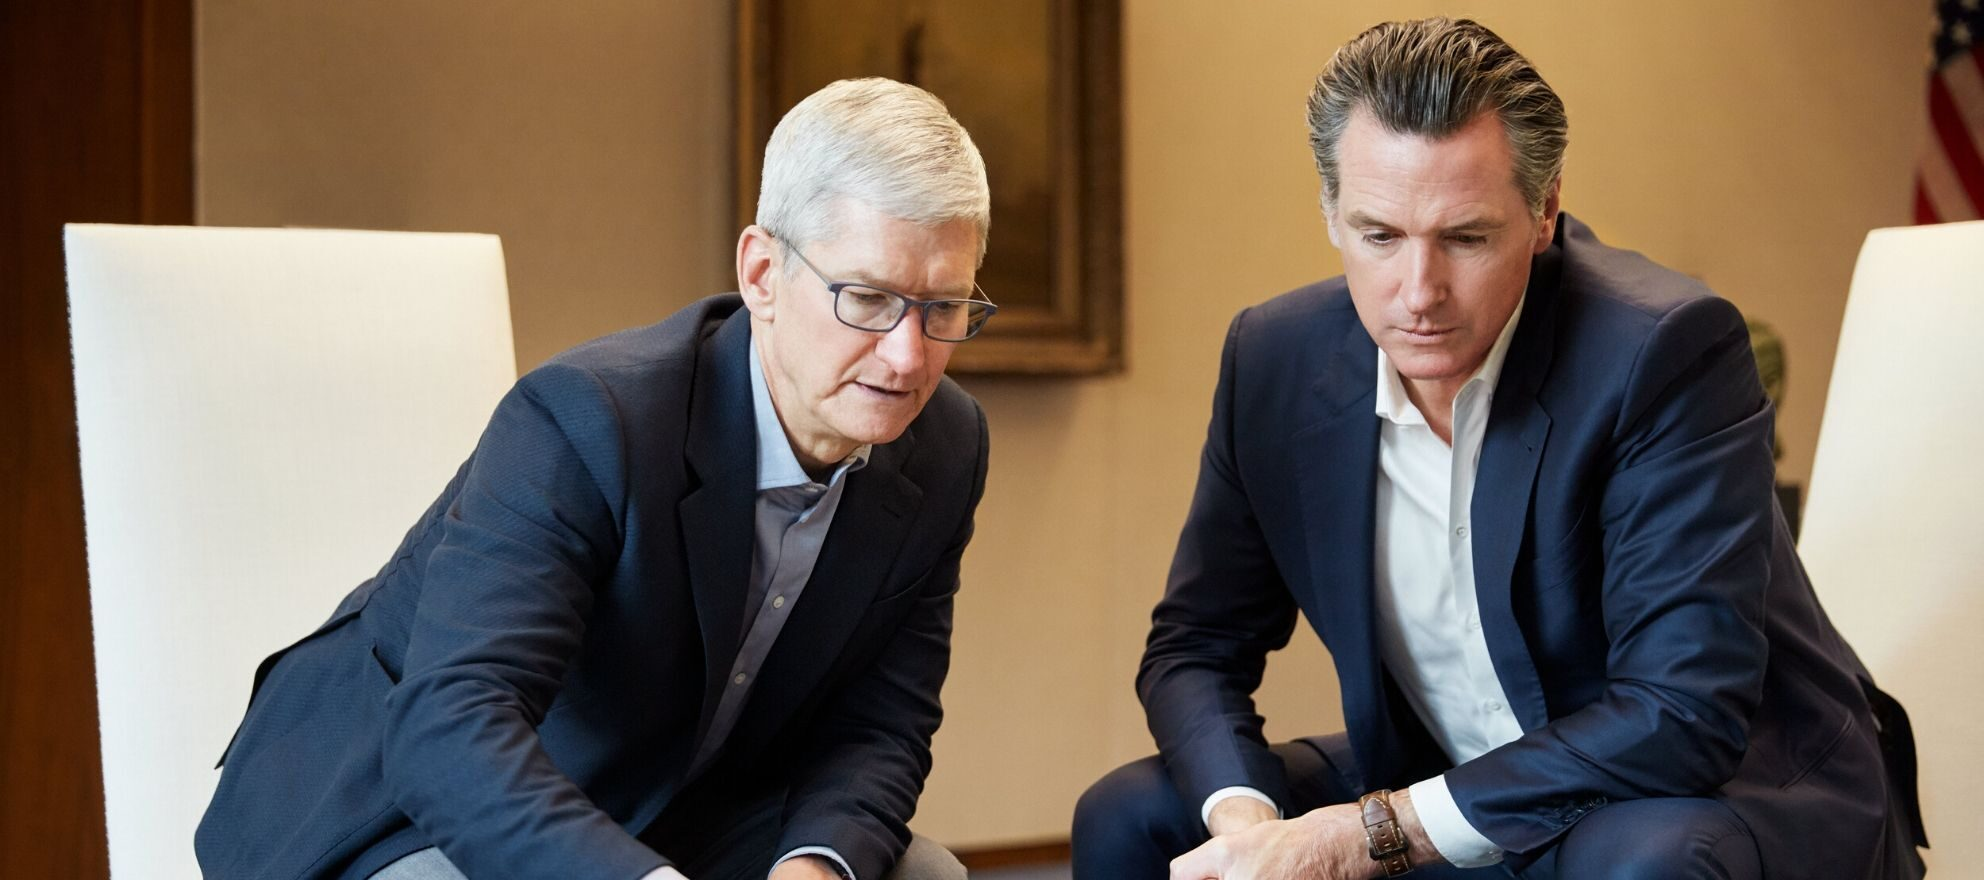 Apple becomes latest company to pledge money for housing crisis